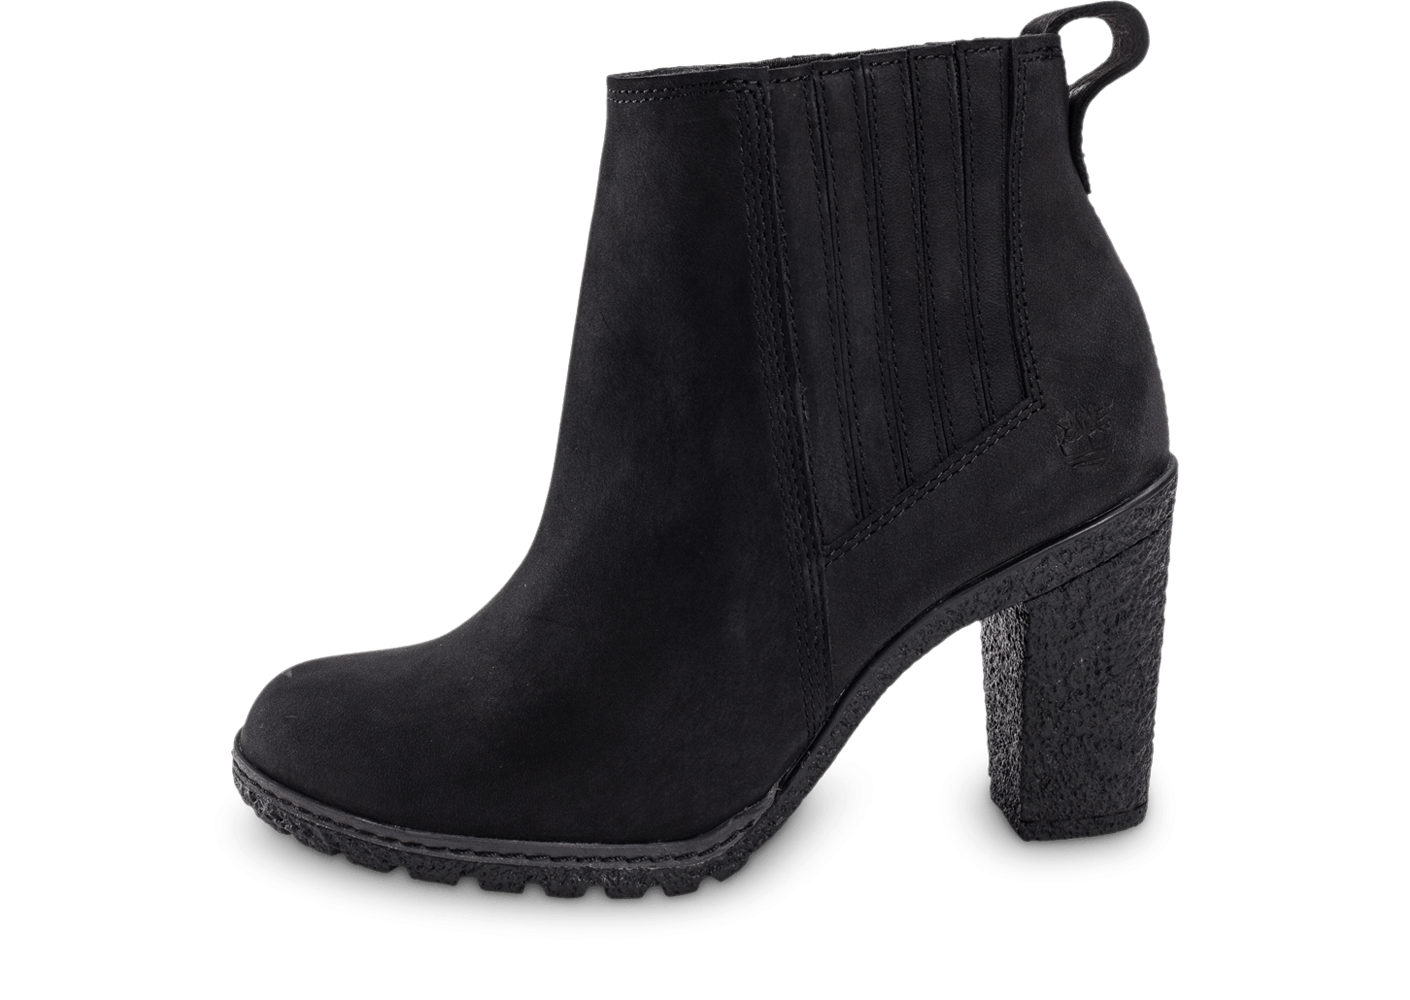 timberland glancy chelsea noire chaussures femme chausport. Black Bedroom Furniture Sets. Home Design Ideas